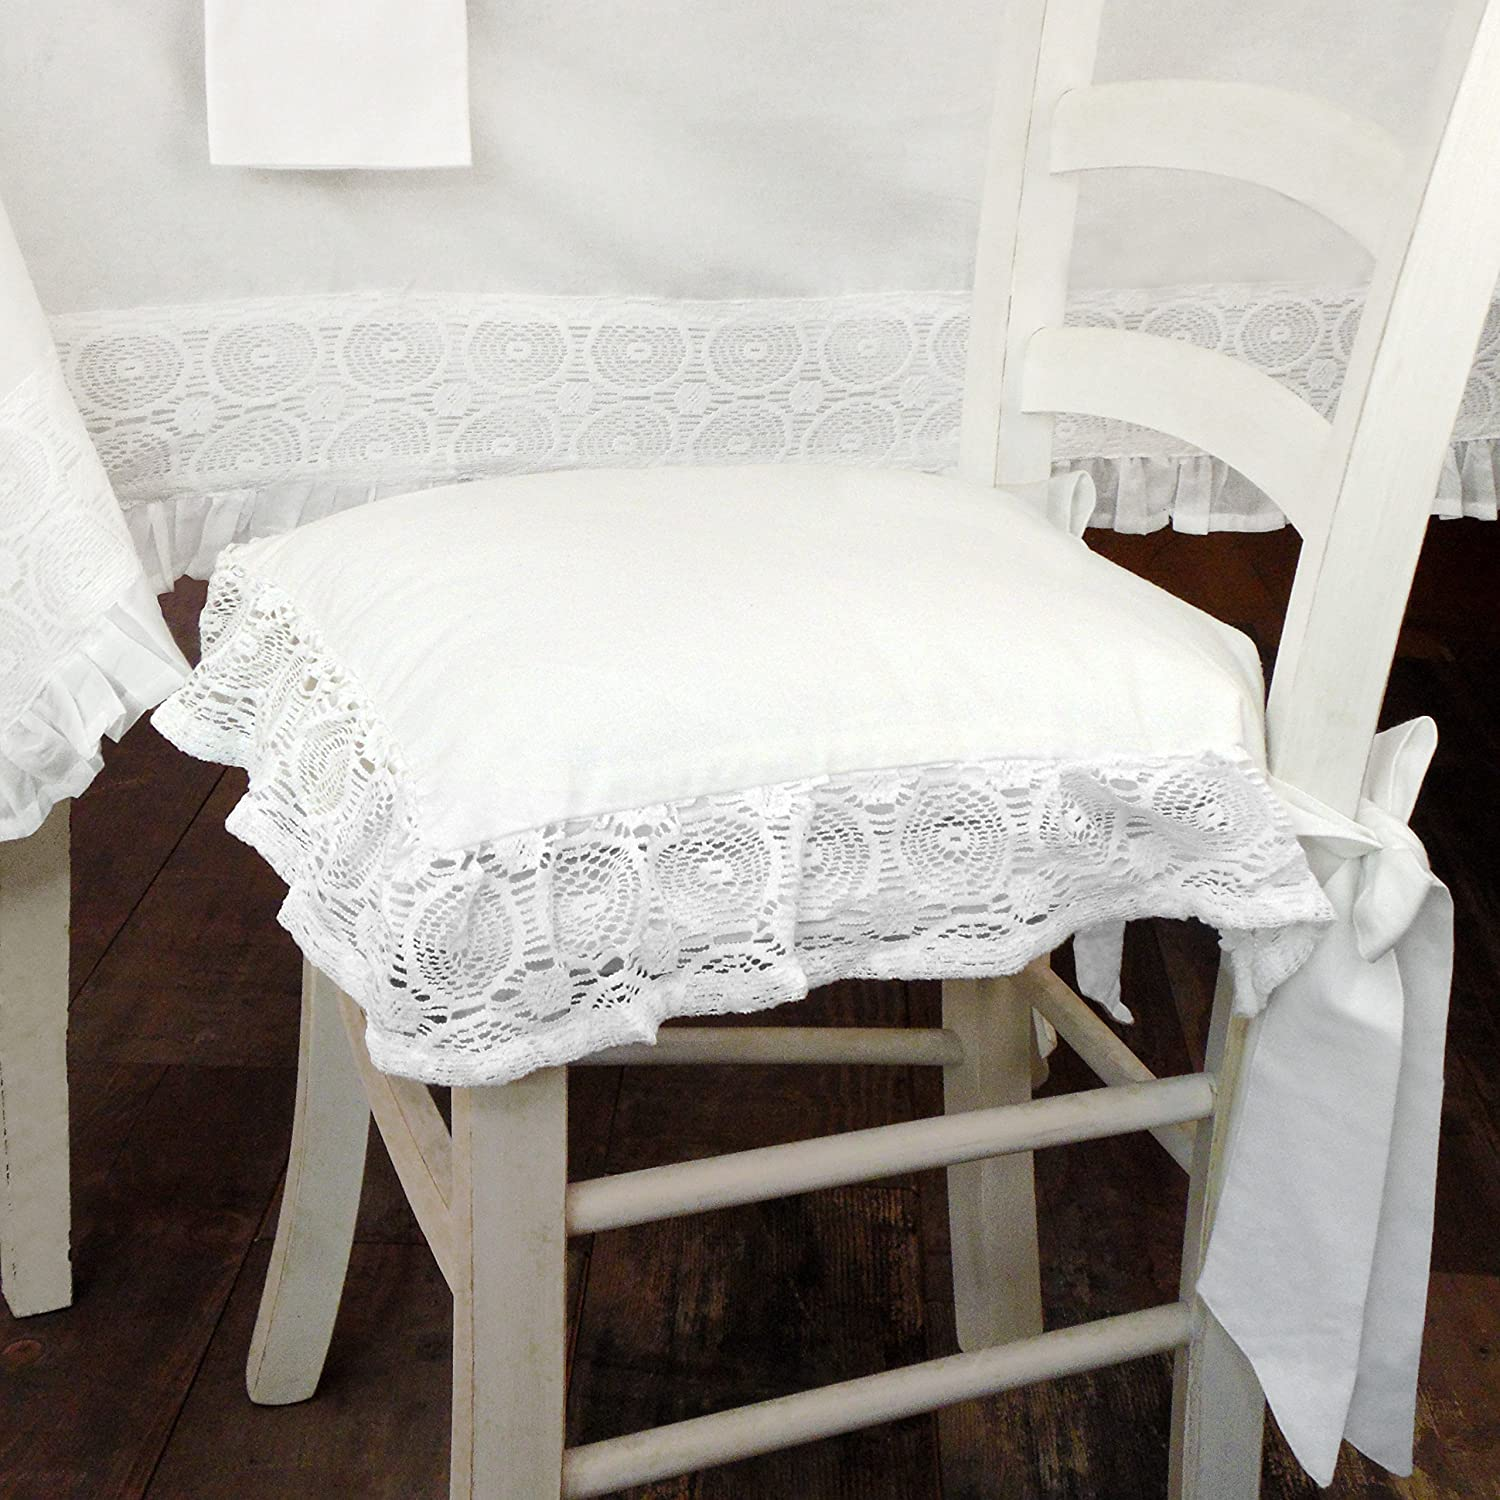 AT17 Cuscino per Sedia Shabby Chic Madame White Collection 40 x 40 Colore Bianco